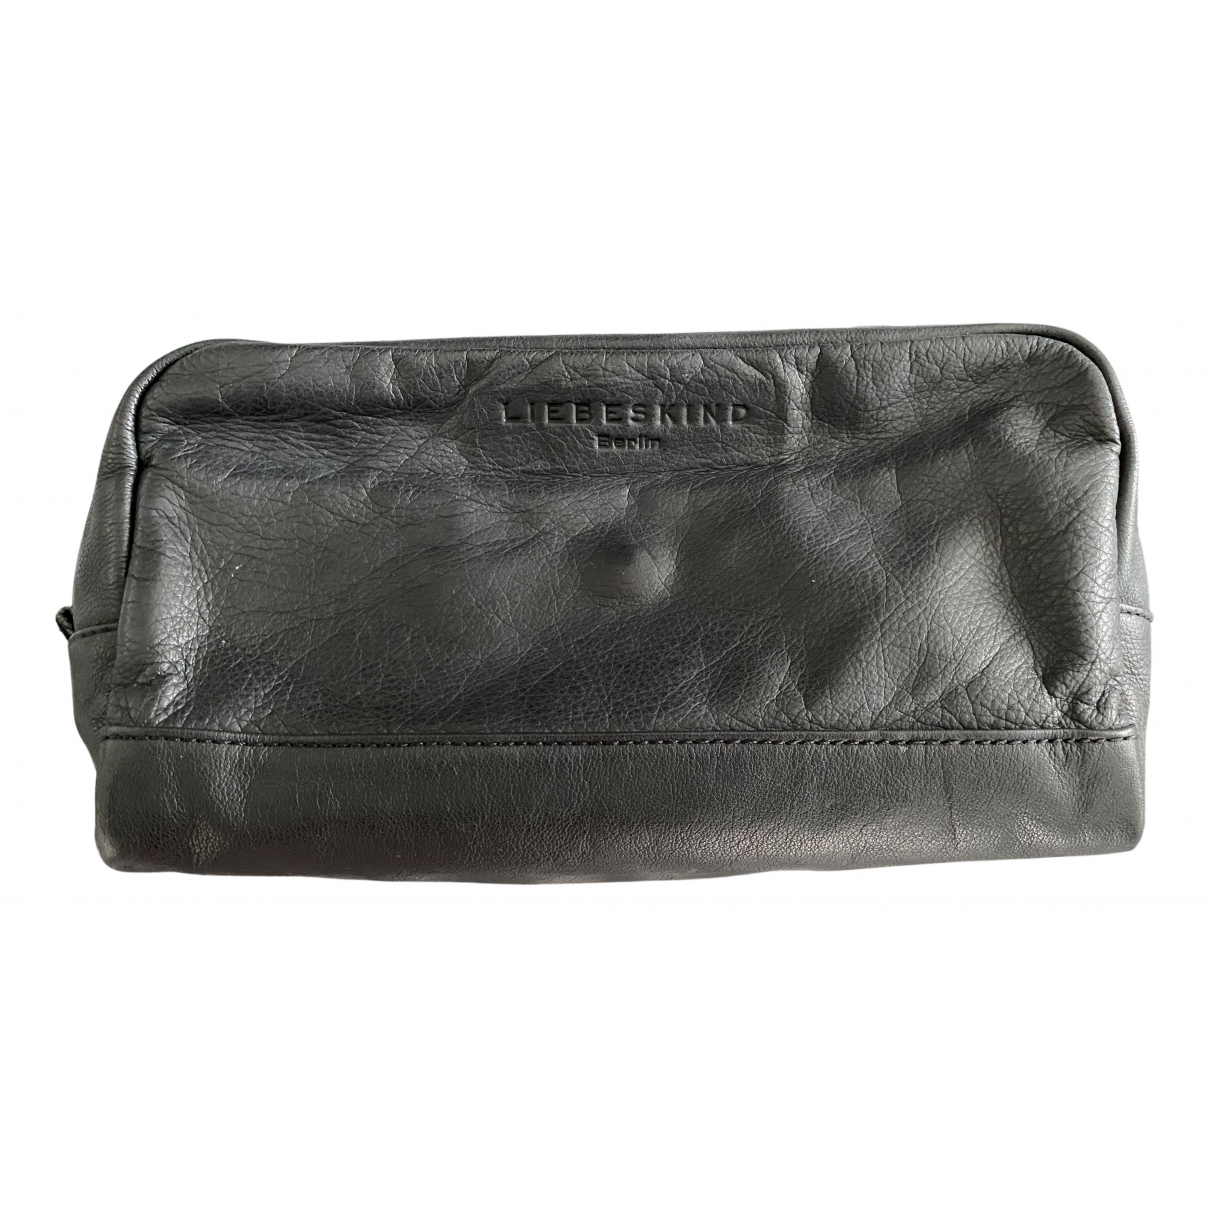 Liebeskind N Black Leather Purses, wallet & cases for Women N